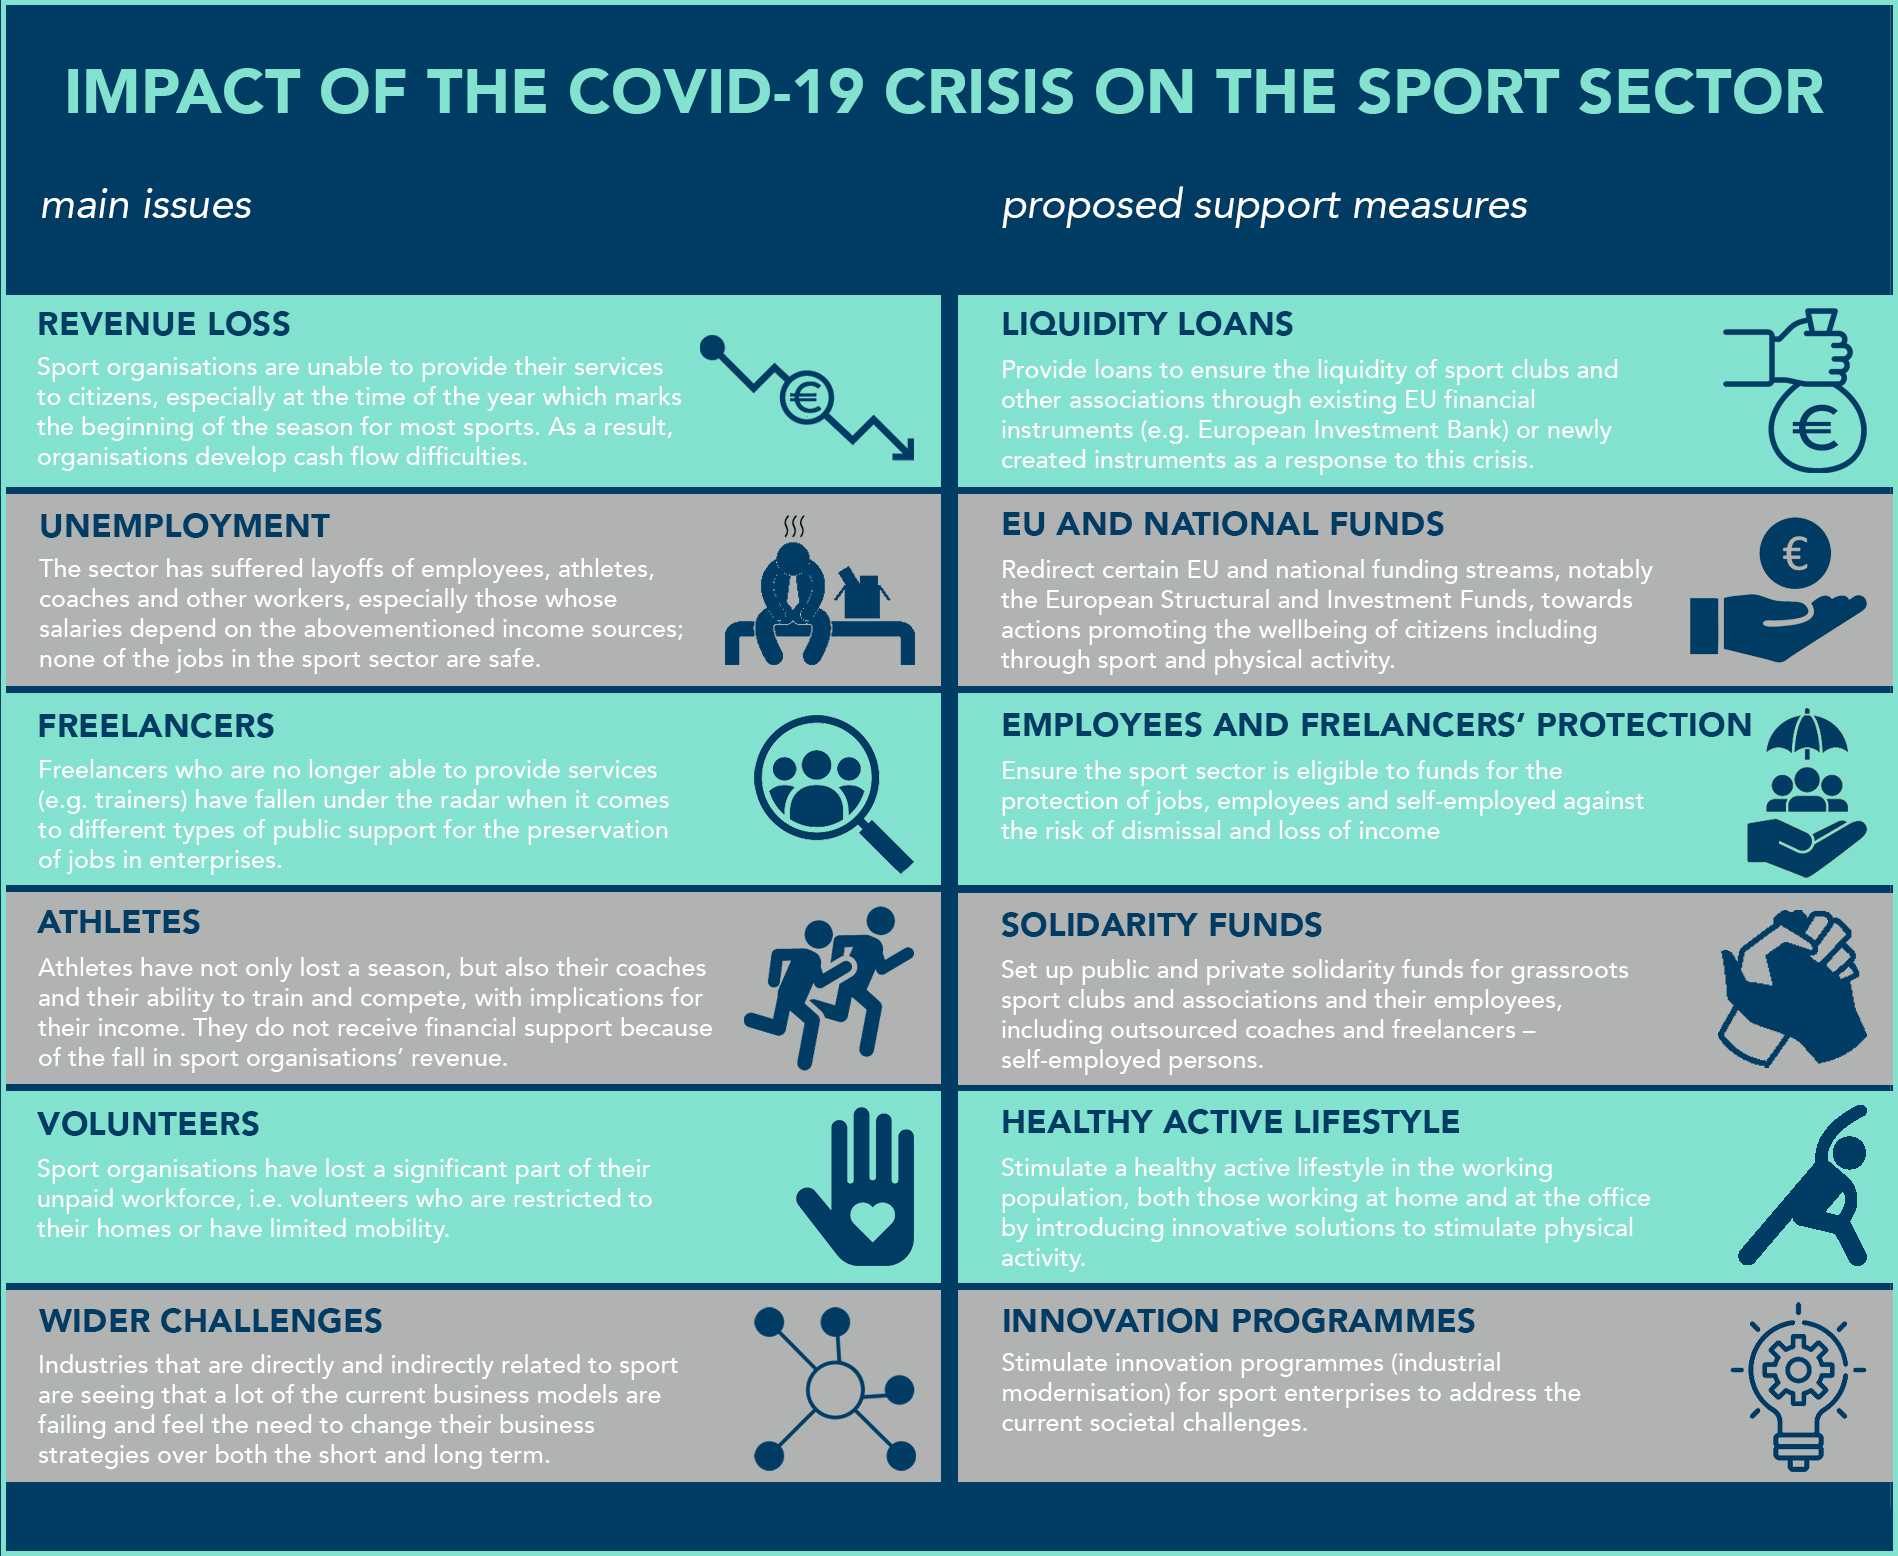 Position paper on the impact of COVID-19 crisis on sport